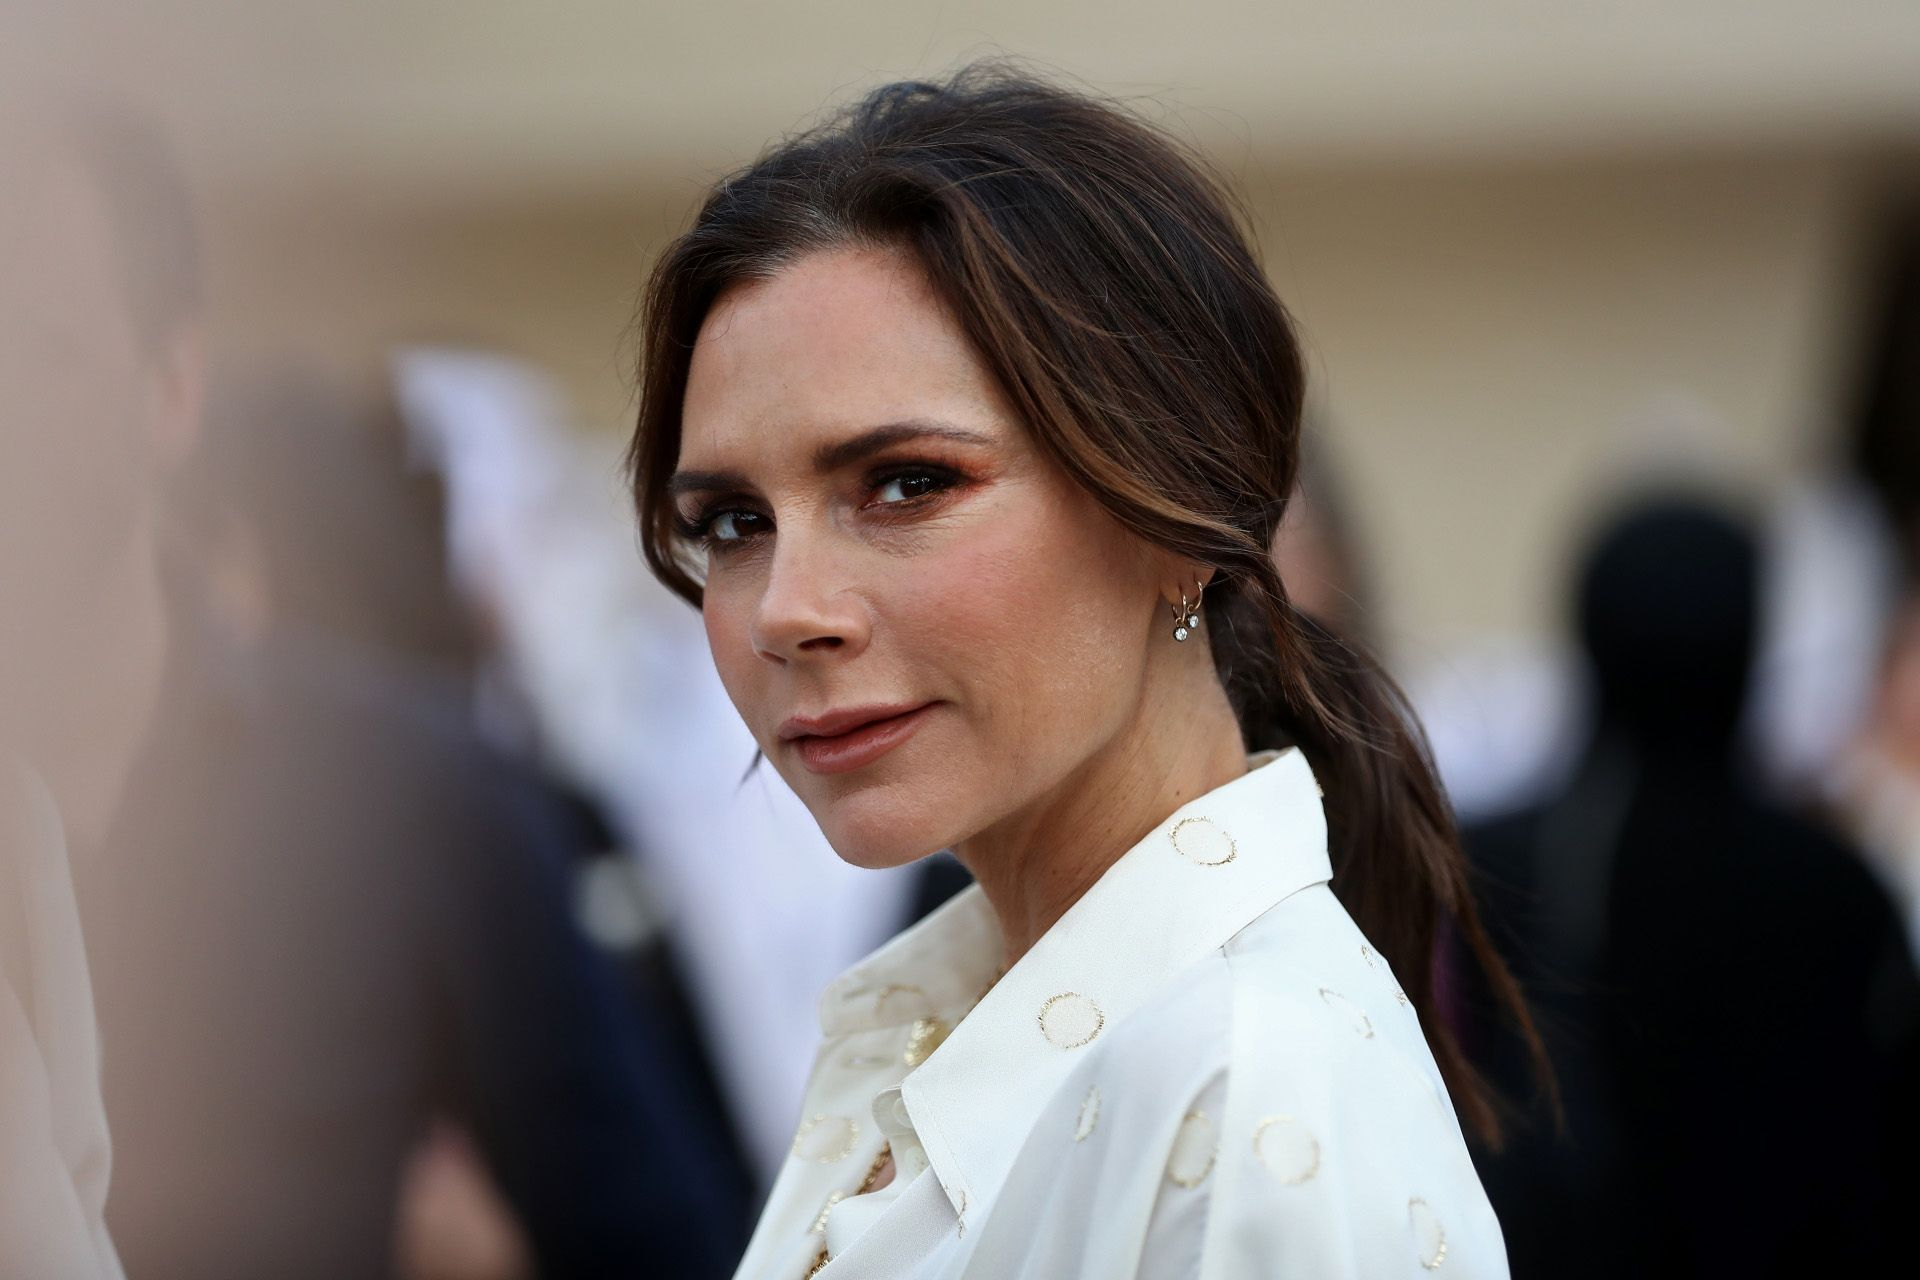 British singer and fashion designer Victoria Beckham attends the official opening ceremony for the National Museum of Qatar, in the capital Doha on March 27, 2019. - The complex architectural form of a desert rose, found in Qatarís arid desert regions, inspired the striking design of the new museum building, conceived by celebrity French architect Jean Nouvel. (Photo by KARIM JAAFAR / AFP)